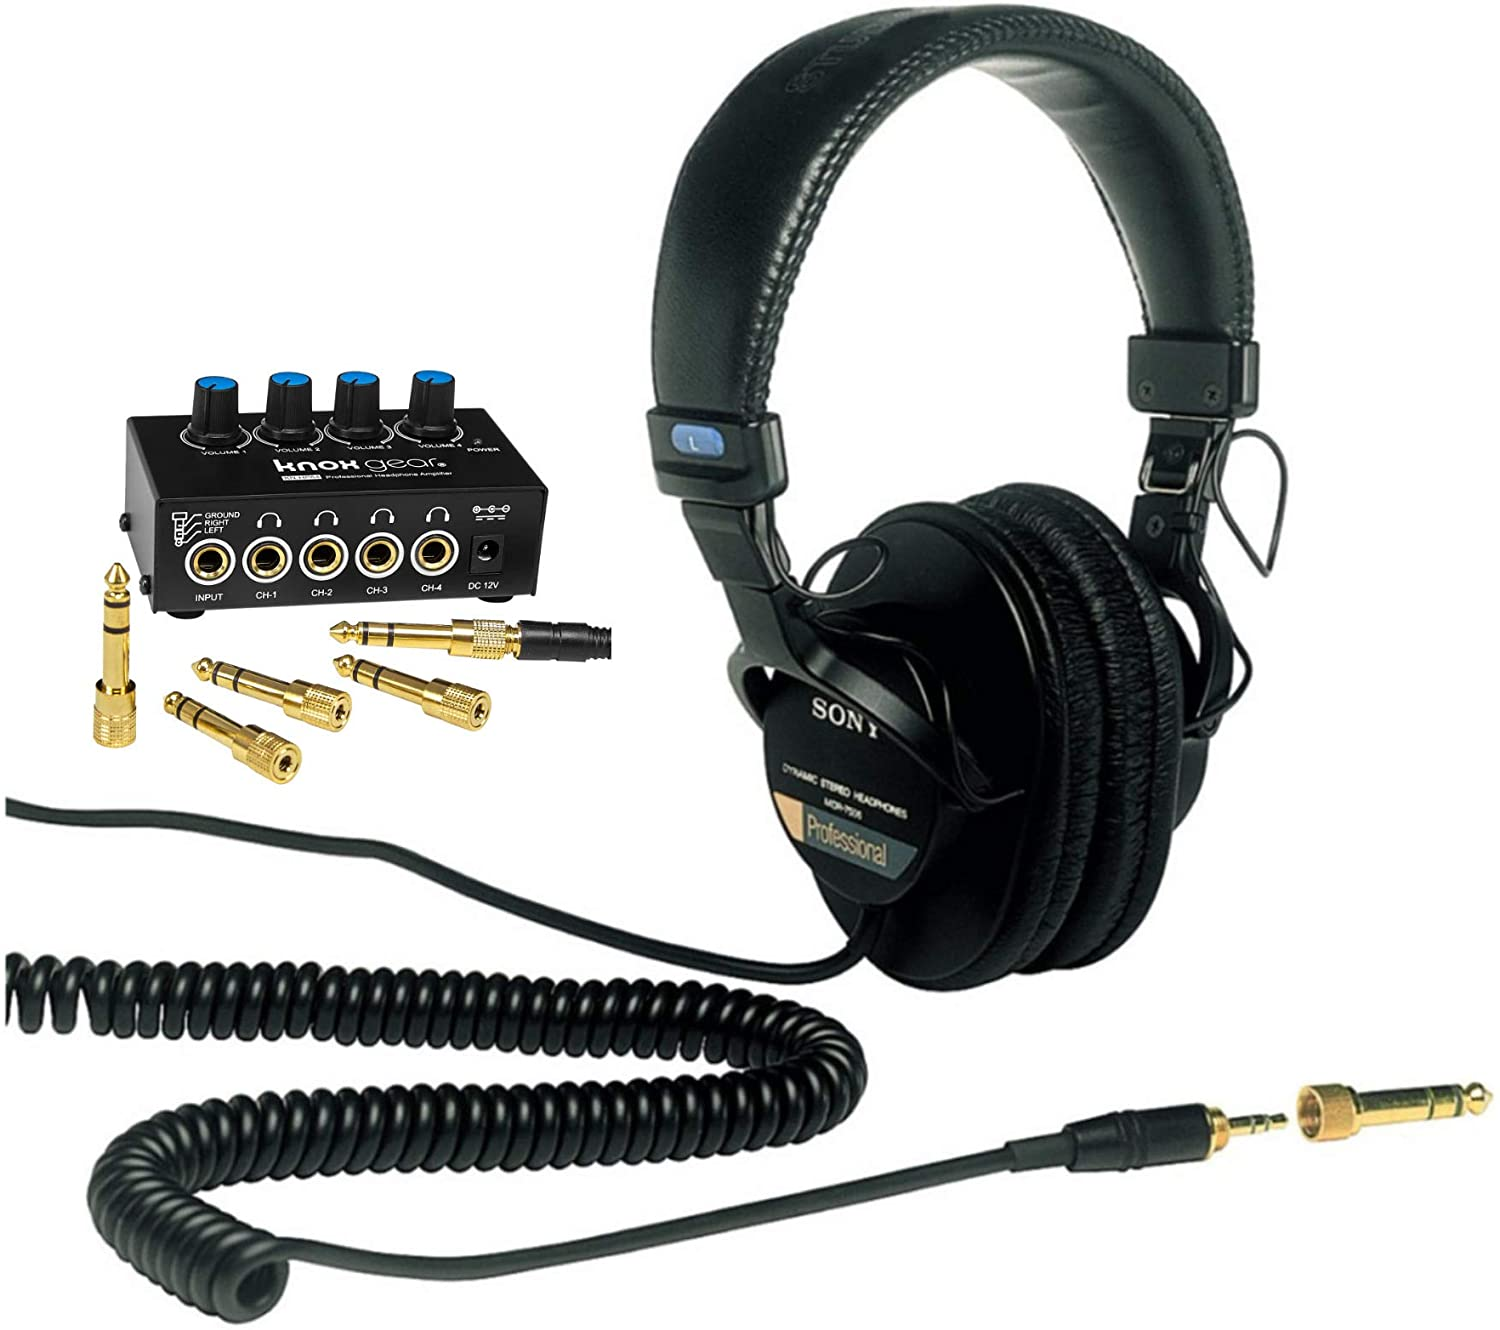 Sony-Headphone-Bundle-for-Podcasts